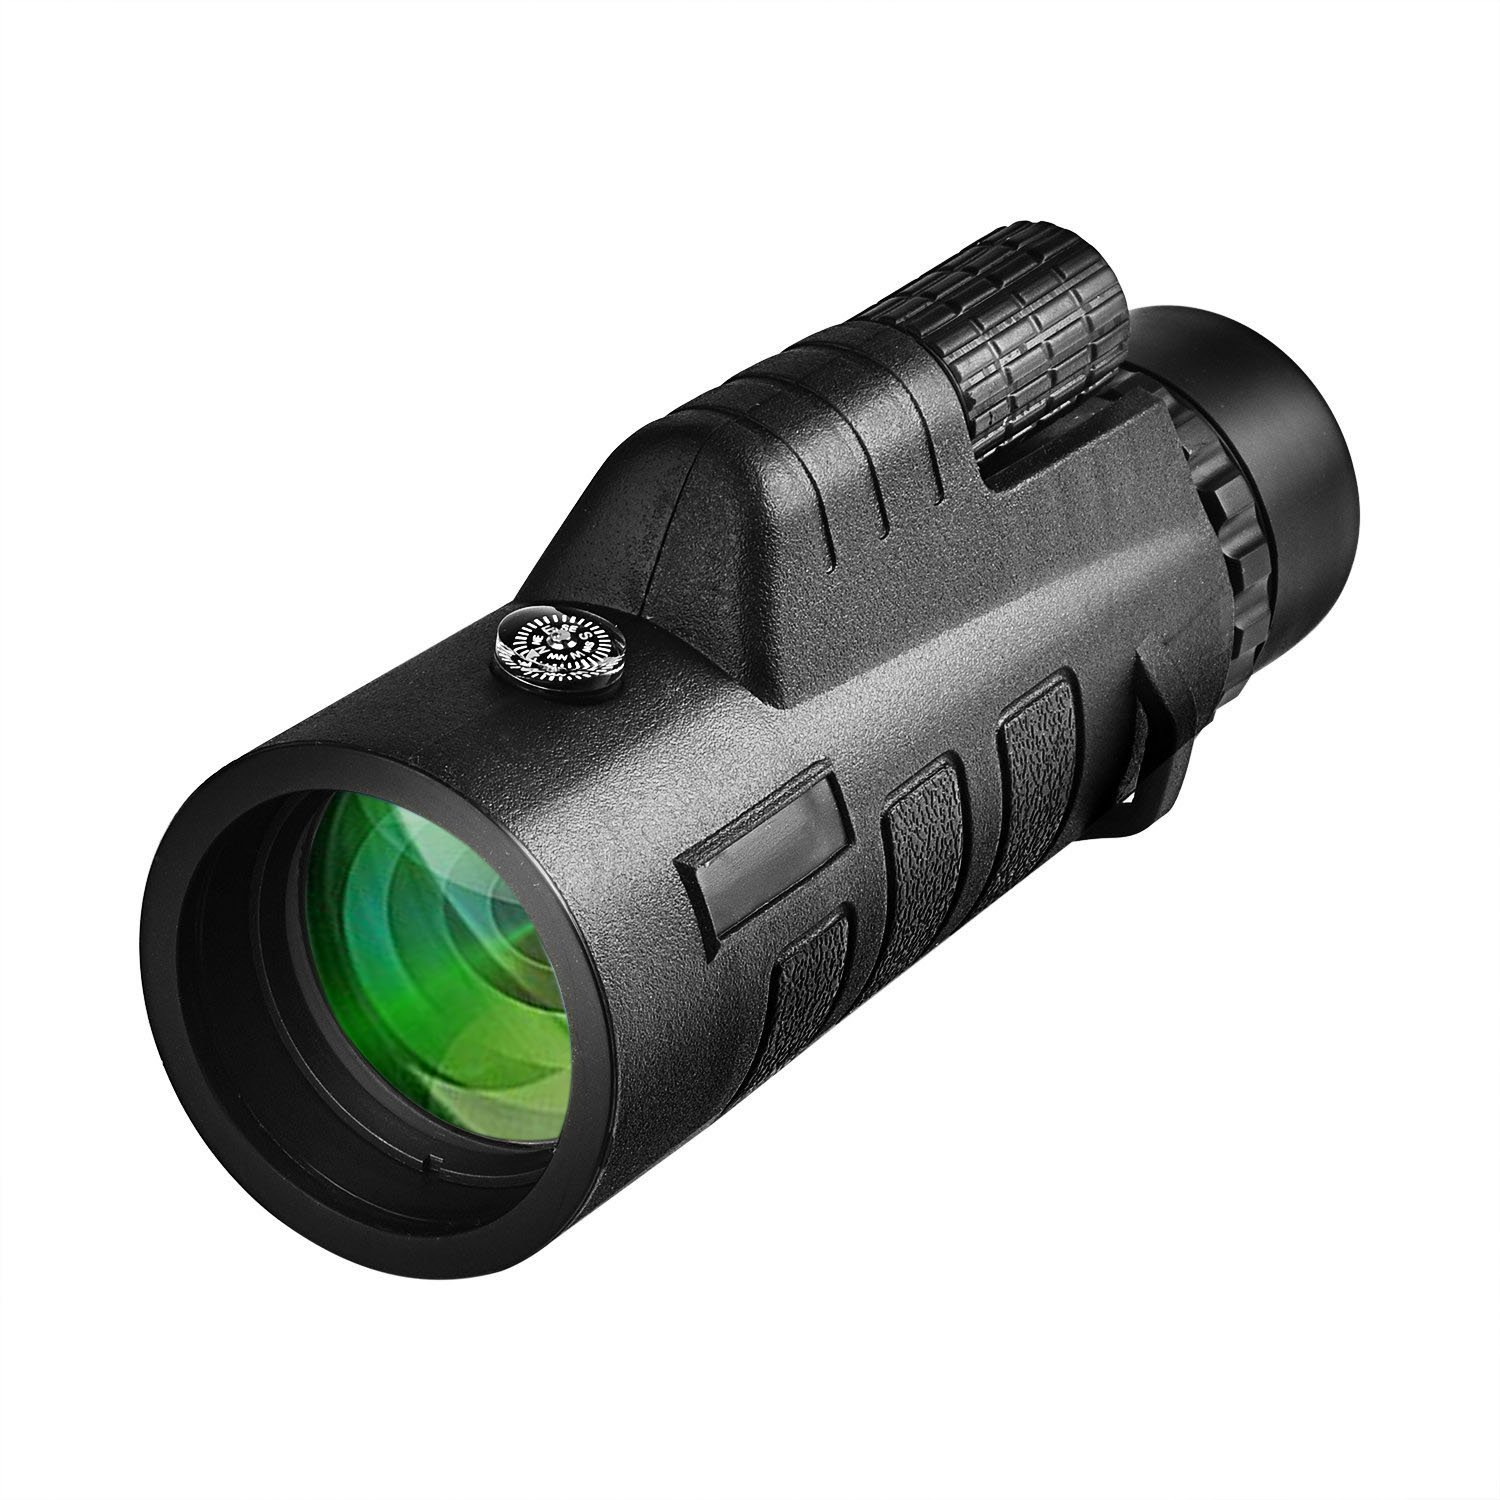 CVLIFE 12x50 Compact Monocular Telescope Pocket Mono Spotting Scope with Compass and Pouch